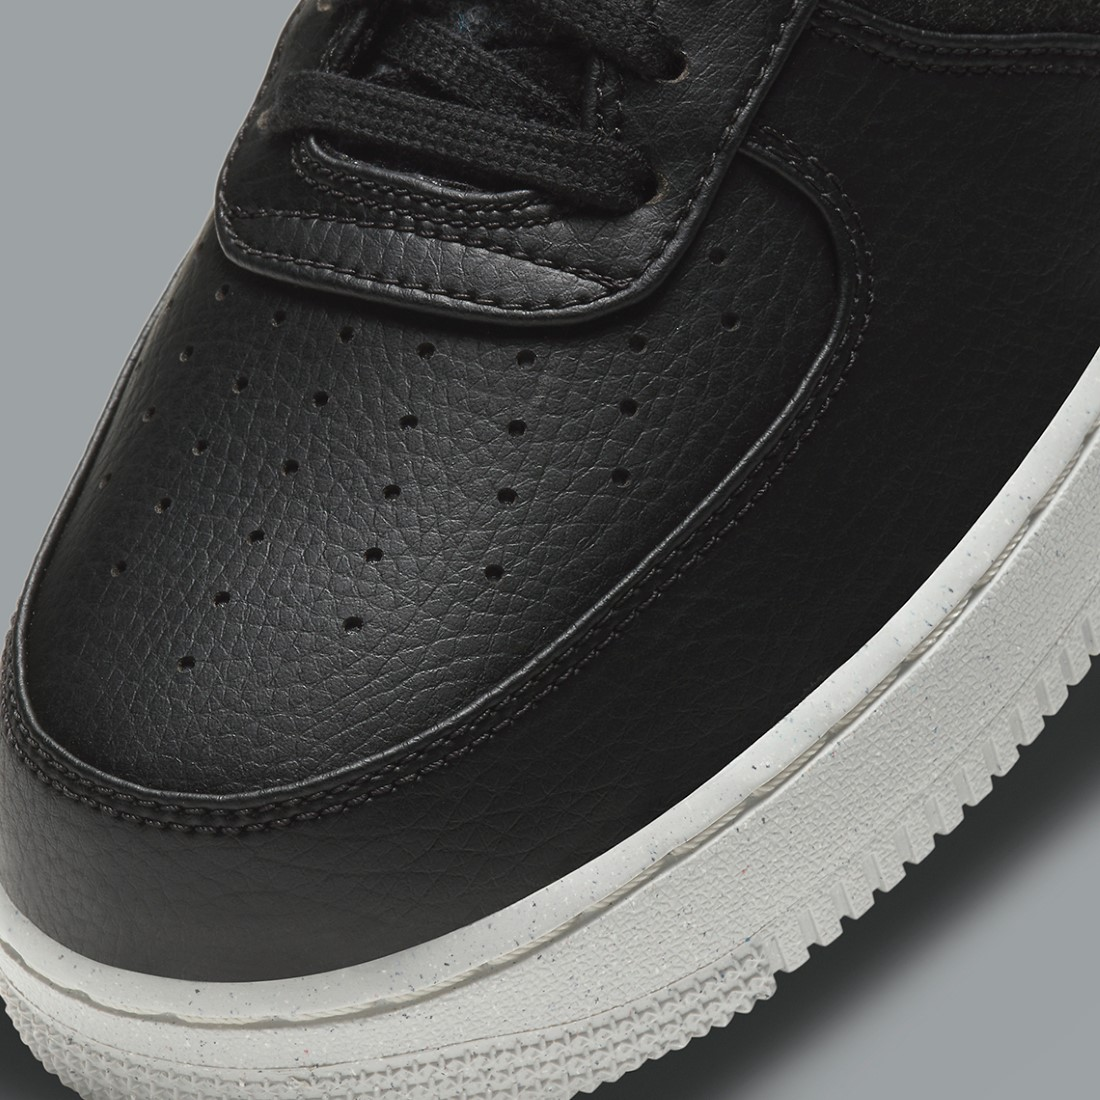 Nike Air Force 1 Wool Pack Black